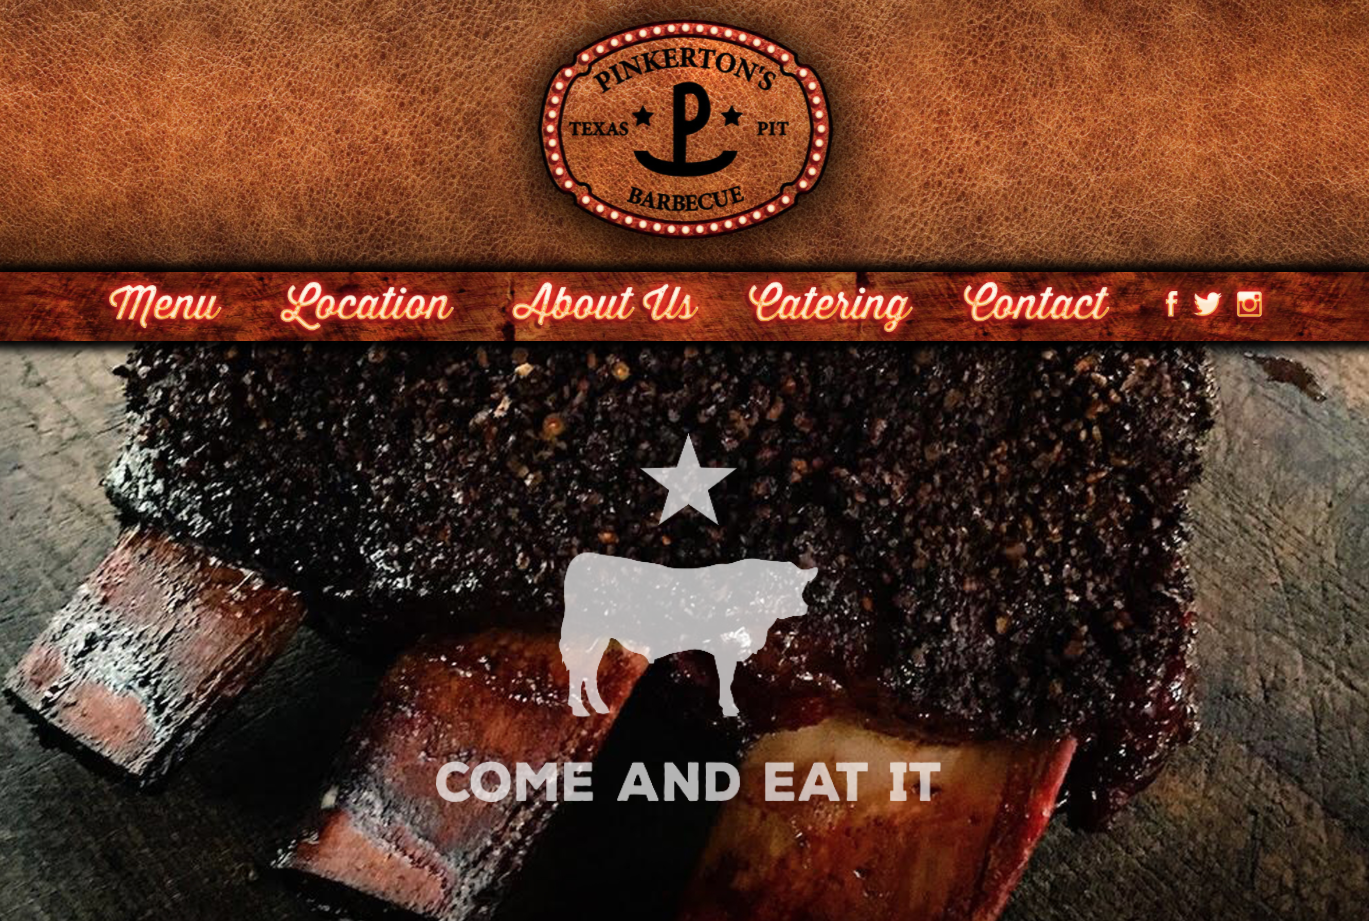 Pinkerton's Barbecue Website Launches Image